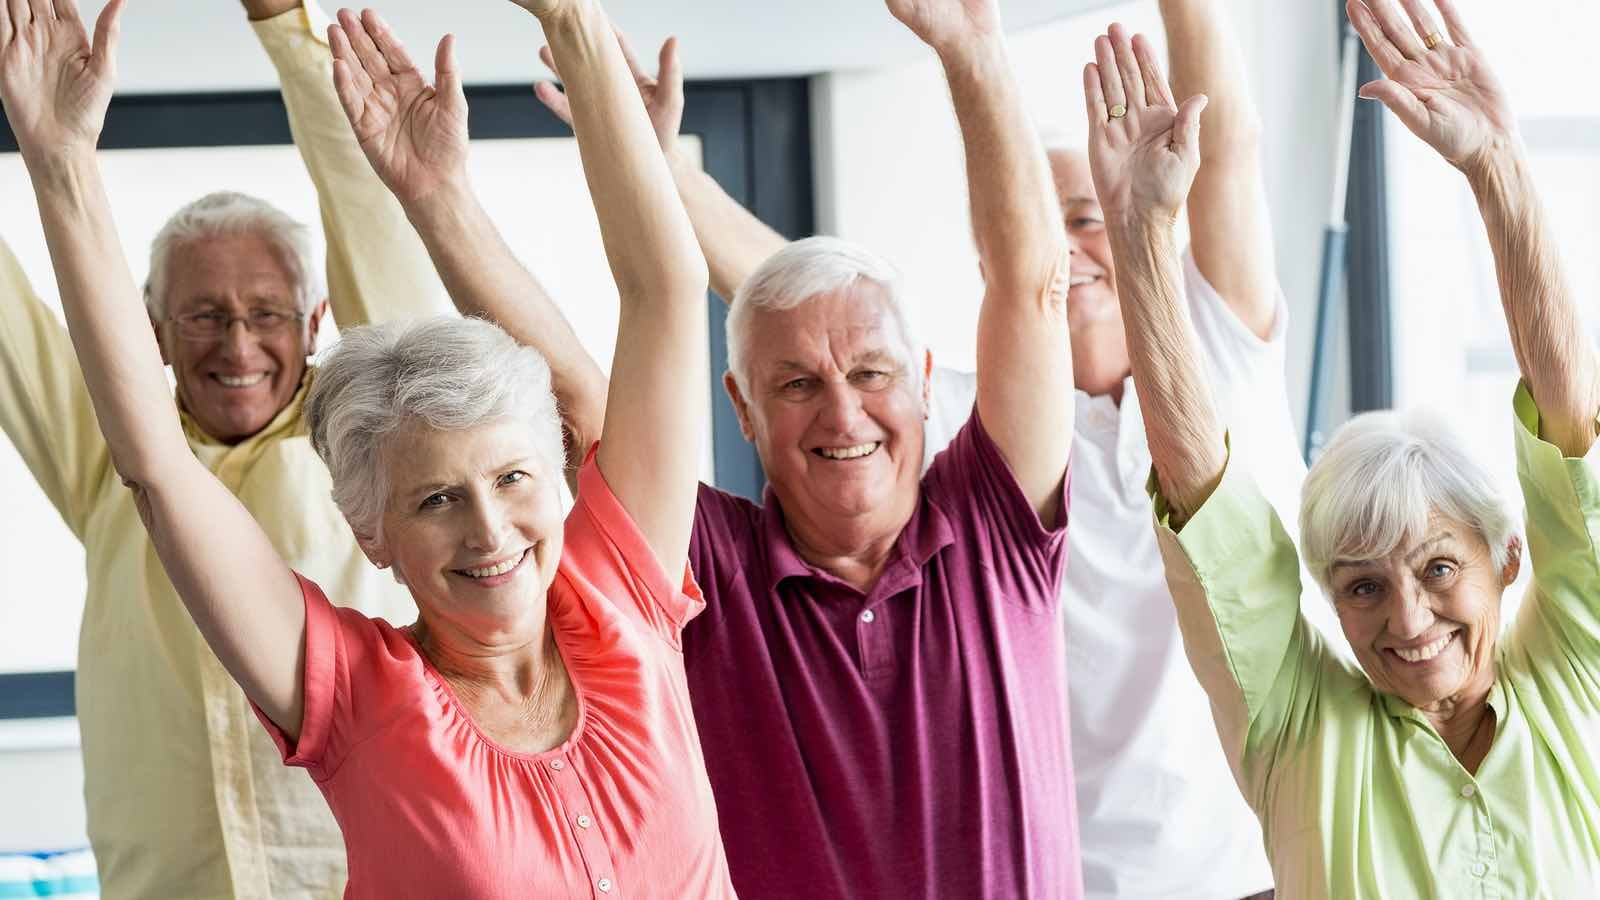 Fall Prevention Through Exercise - How can we help prevent falls in the older adult?